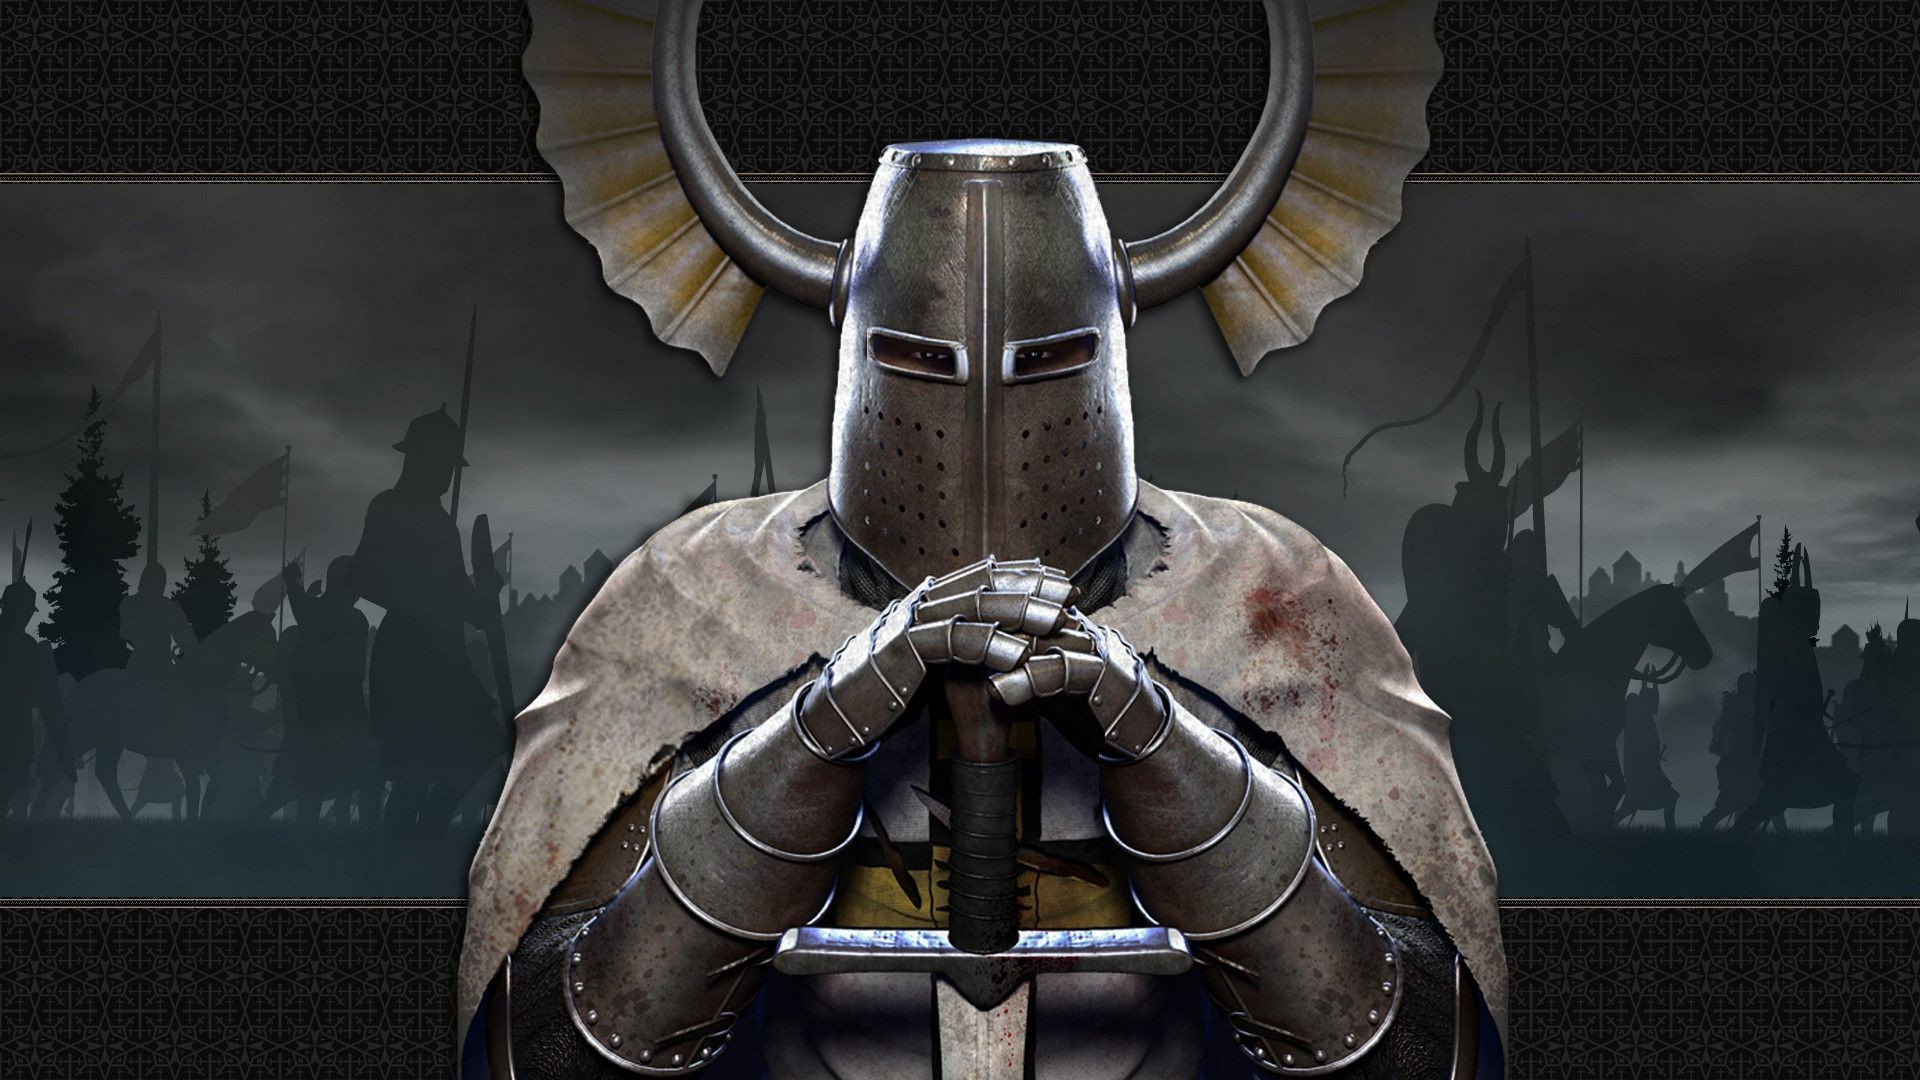 Medieval Black Knight Wallpapers Photo On Wallpaper Hd 1920 x 1080 px  623.08 KB paladin holy